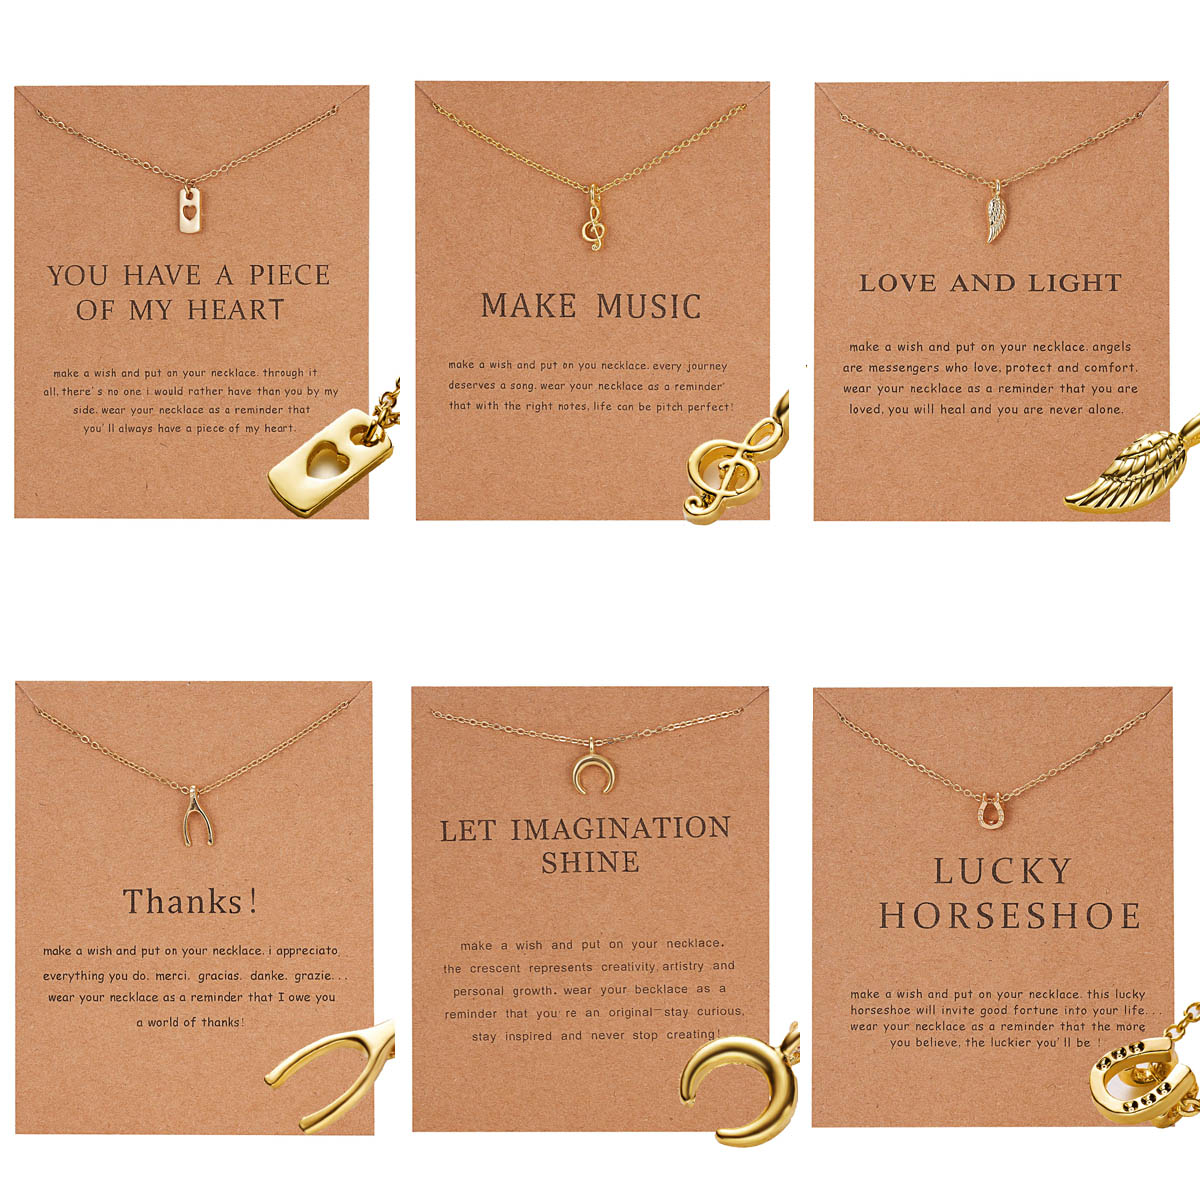 12 Constellation Pendant Necklace Zodiac Sign Necklace Birthday Gifts Message Card for Women Girl image